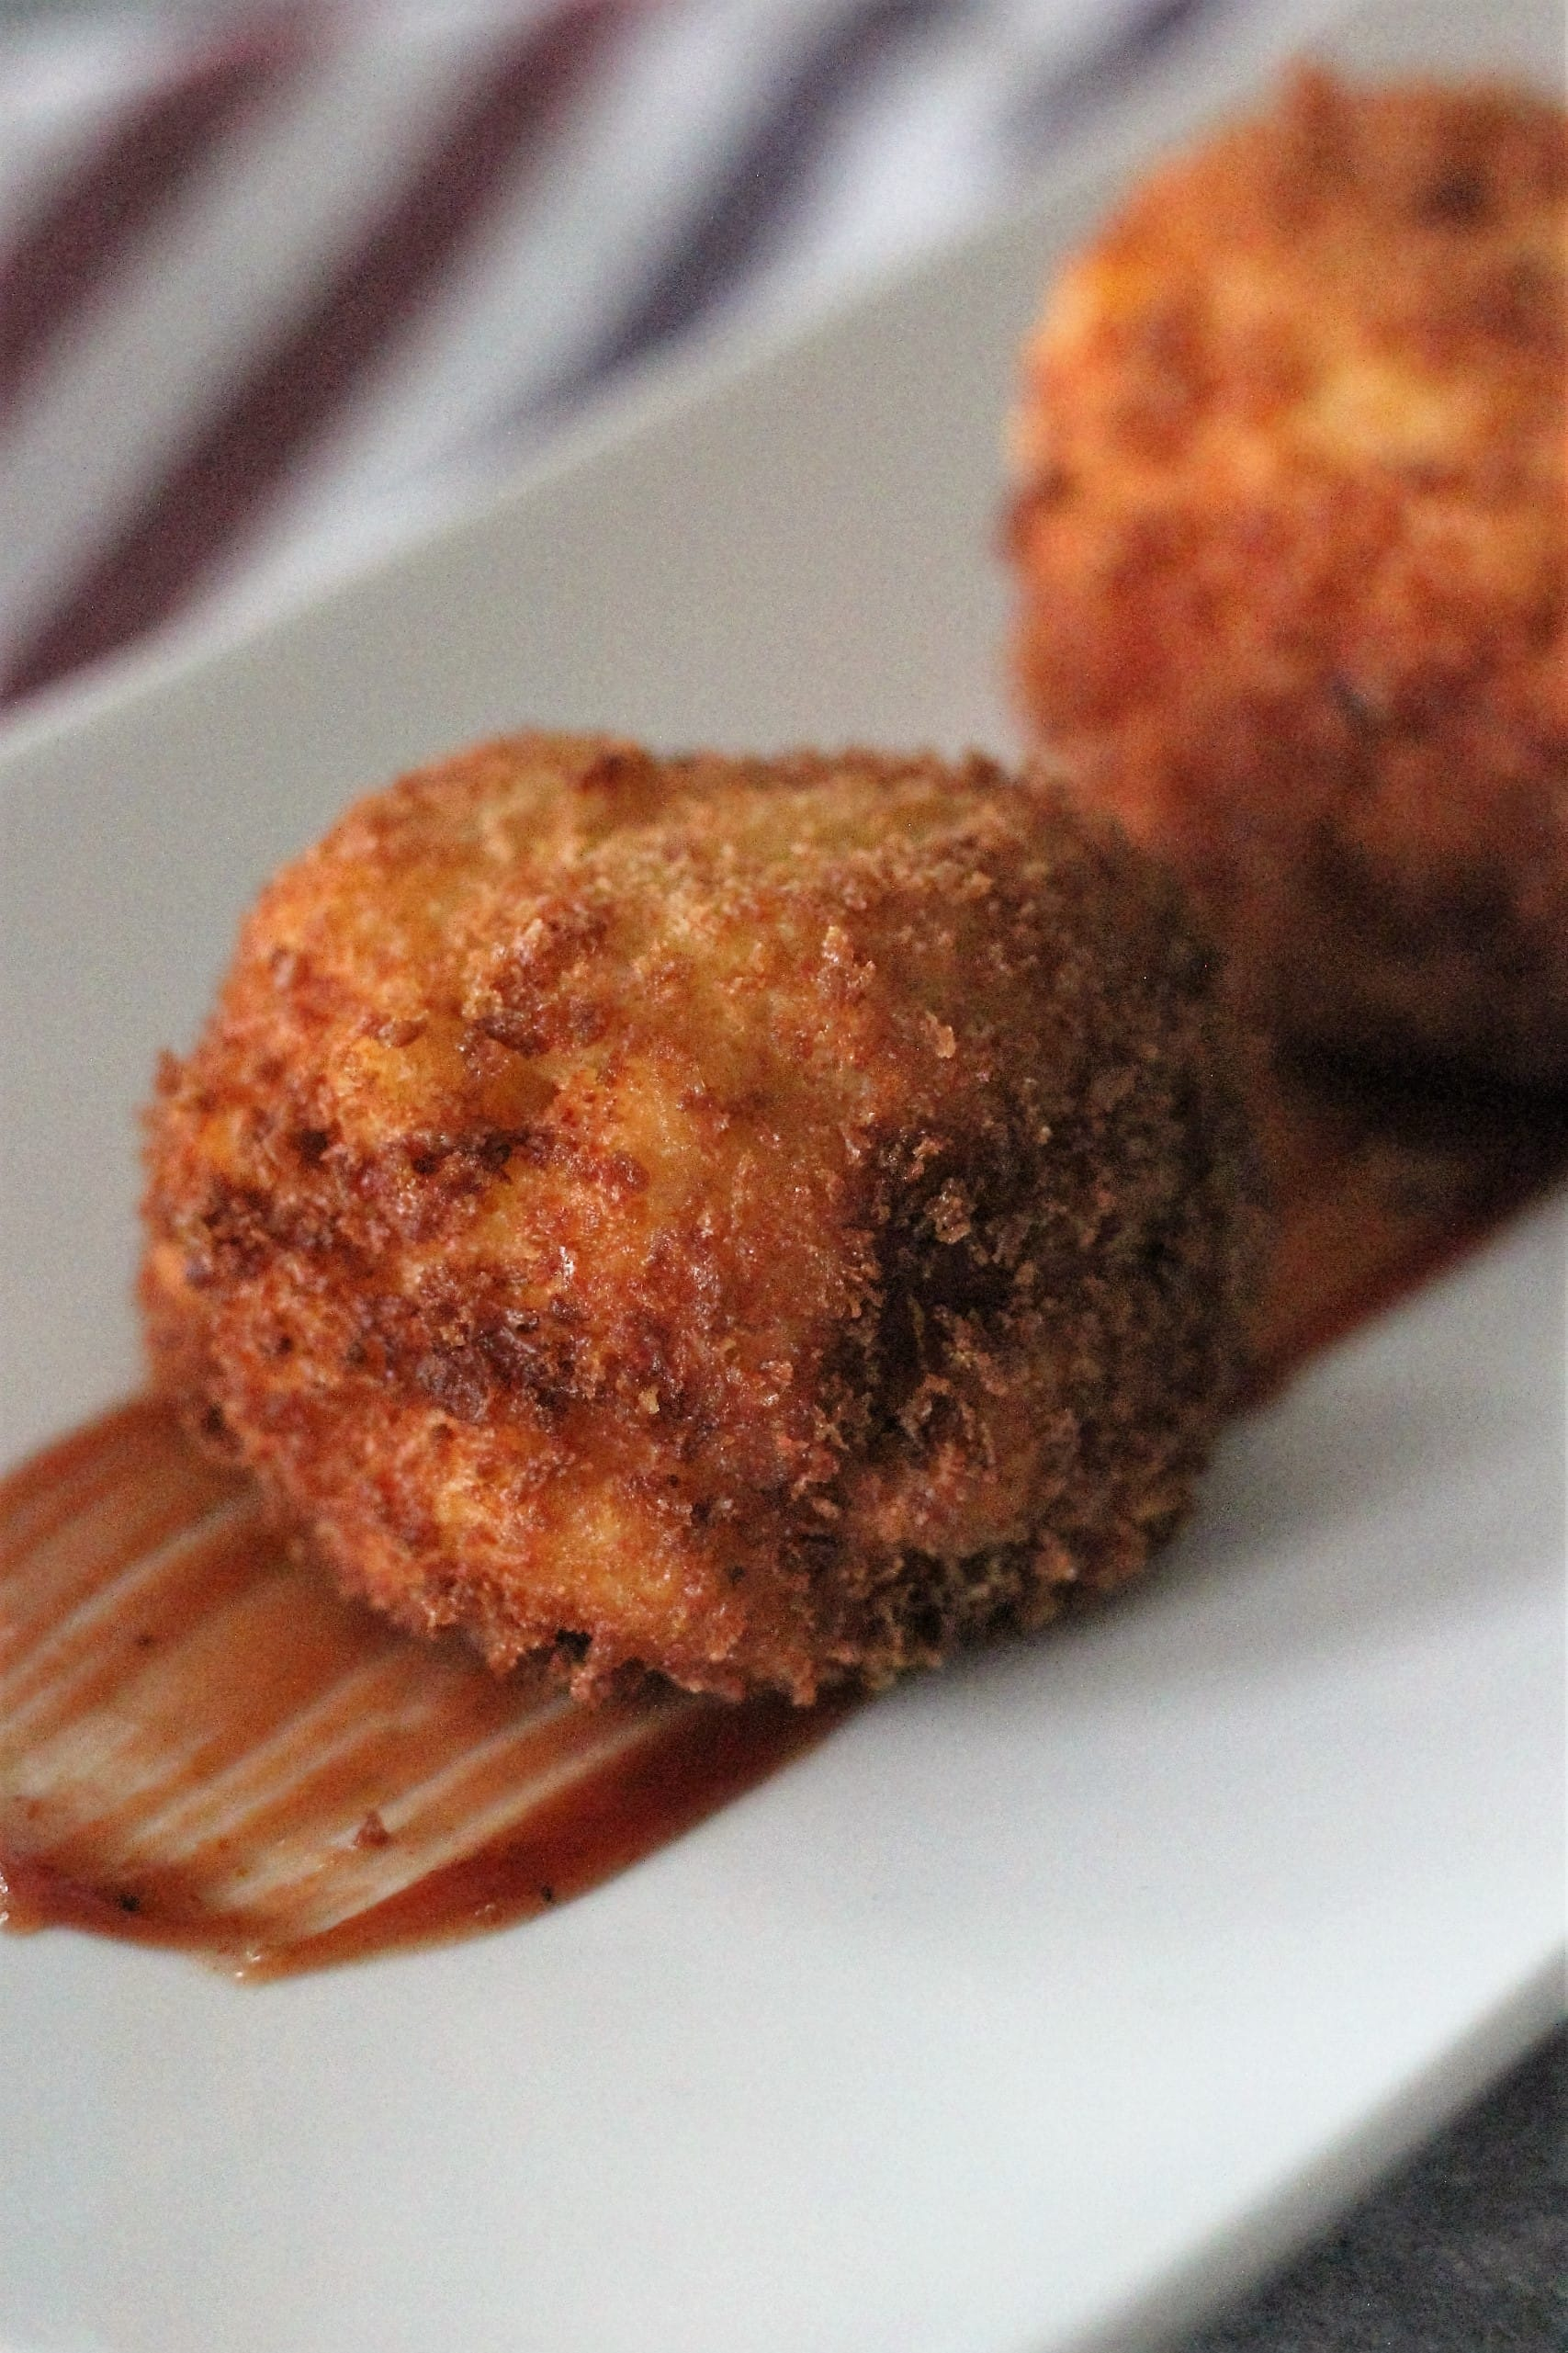 Pulled Pork Stuffed Mac and Cheese Bombs served on a white plate.